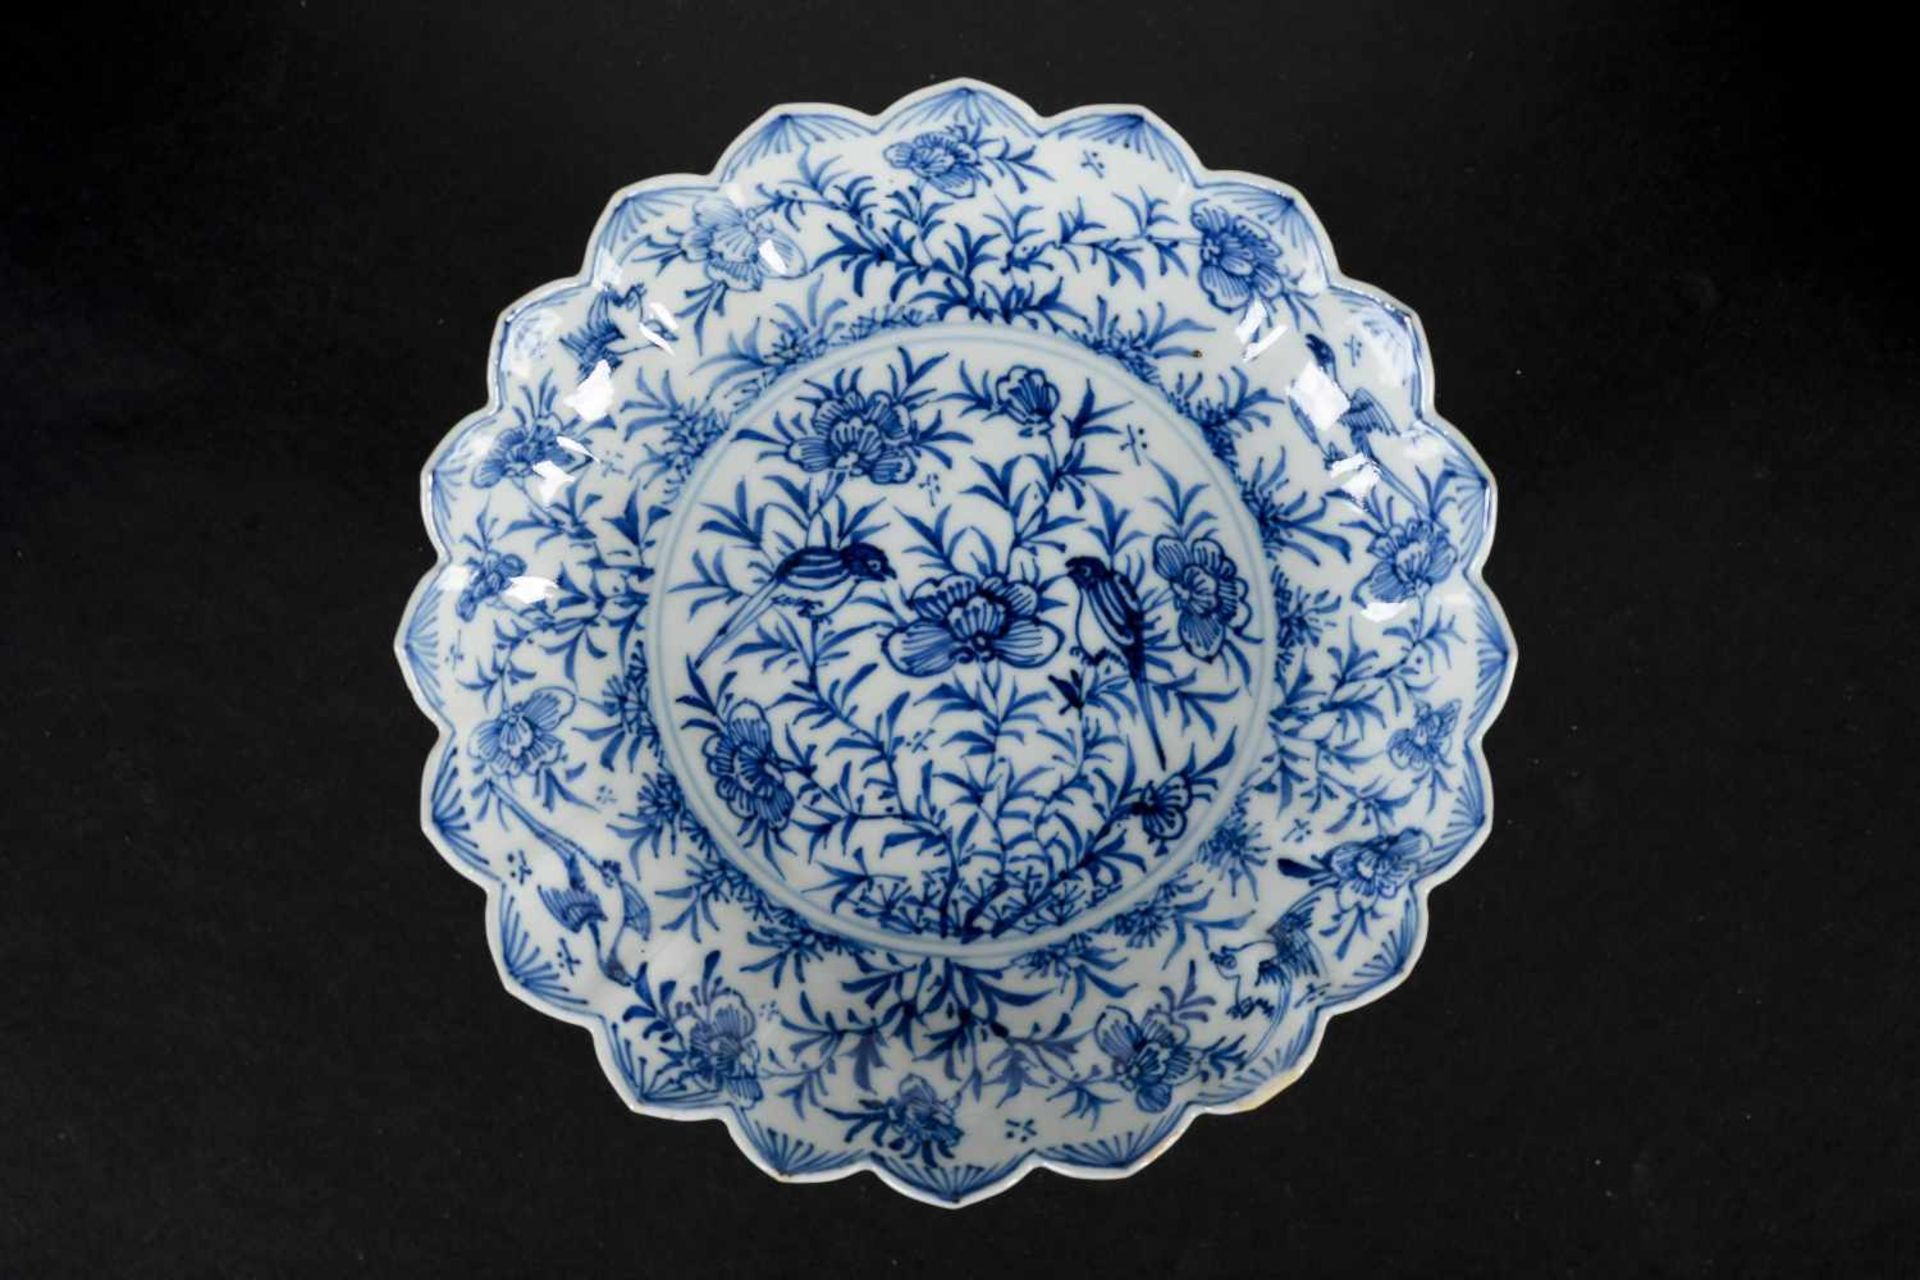 A set of six blue and white porcelain deep saucers with scalloped rim, decorated with flowers and - Bild 4 aus 8